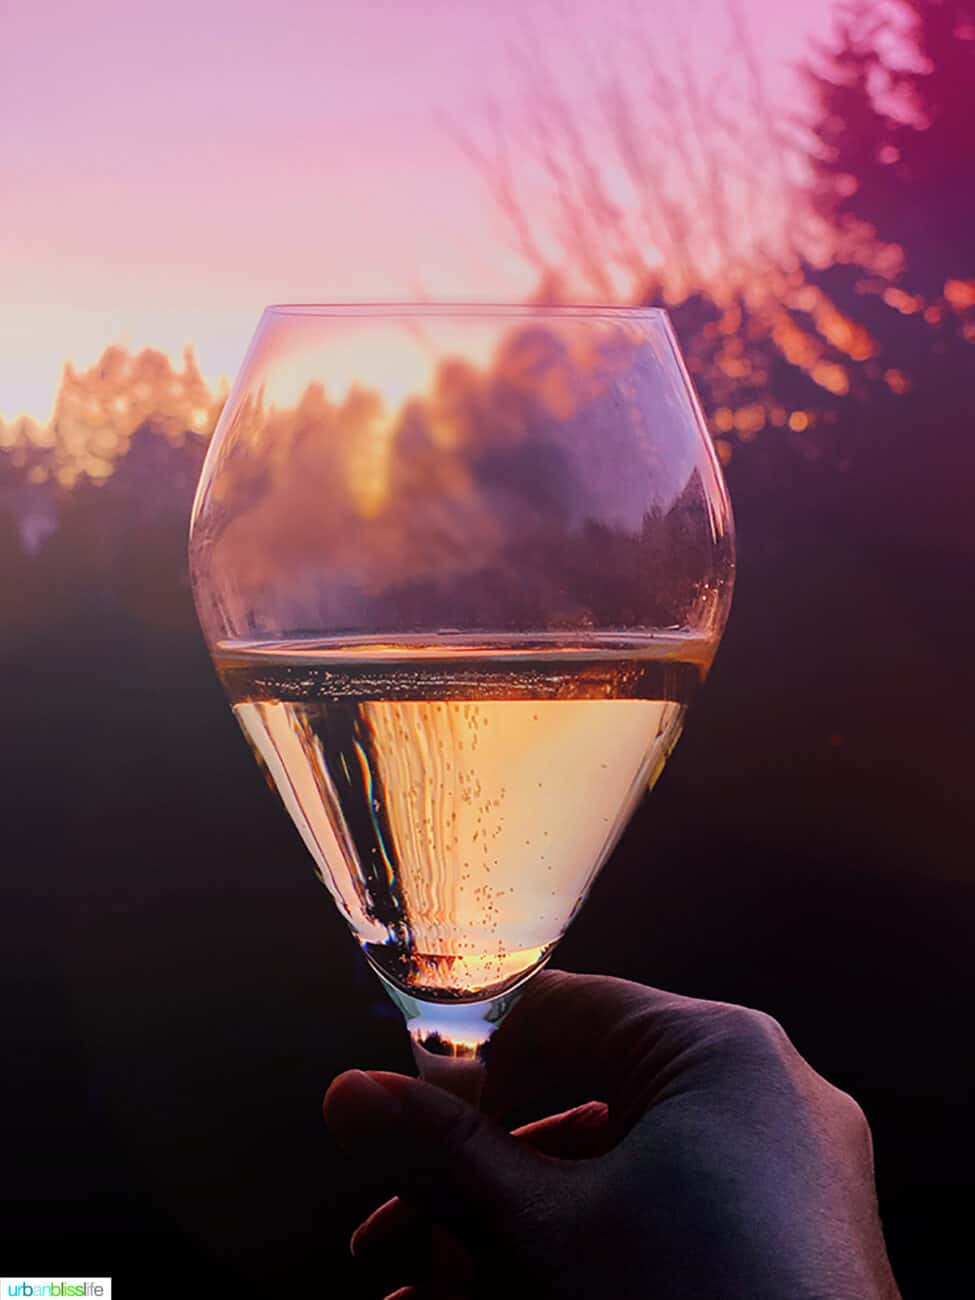 Champagne glass against sunset